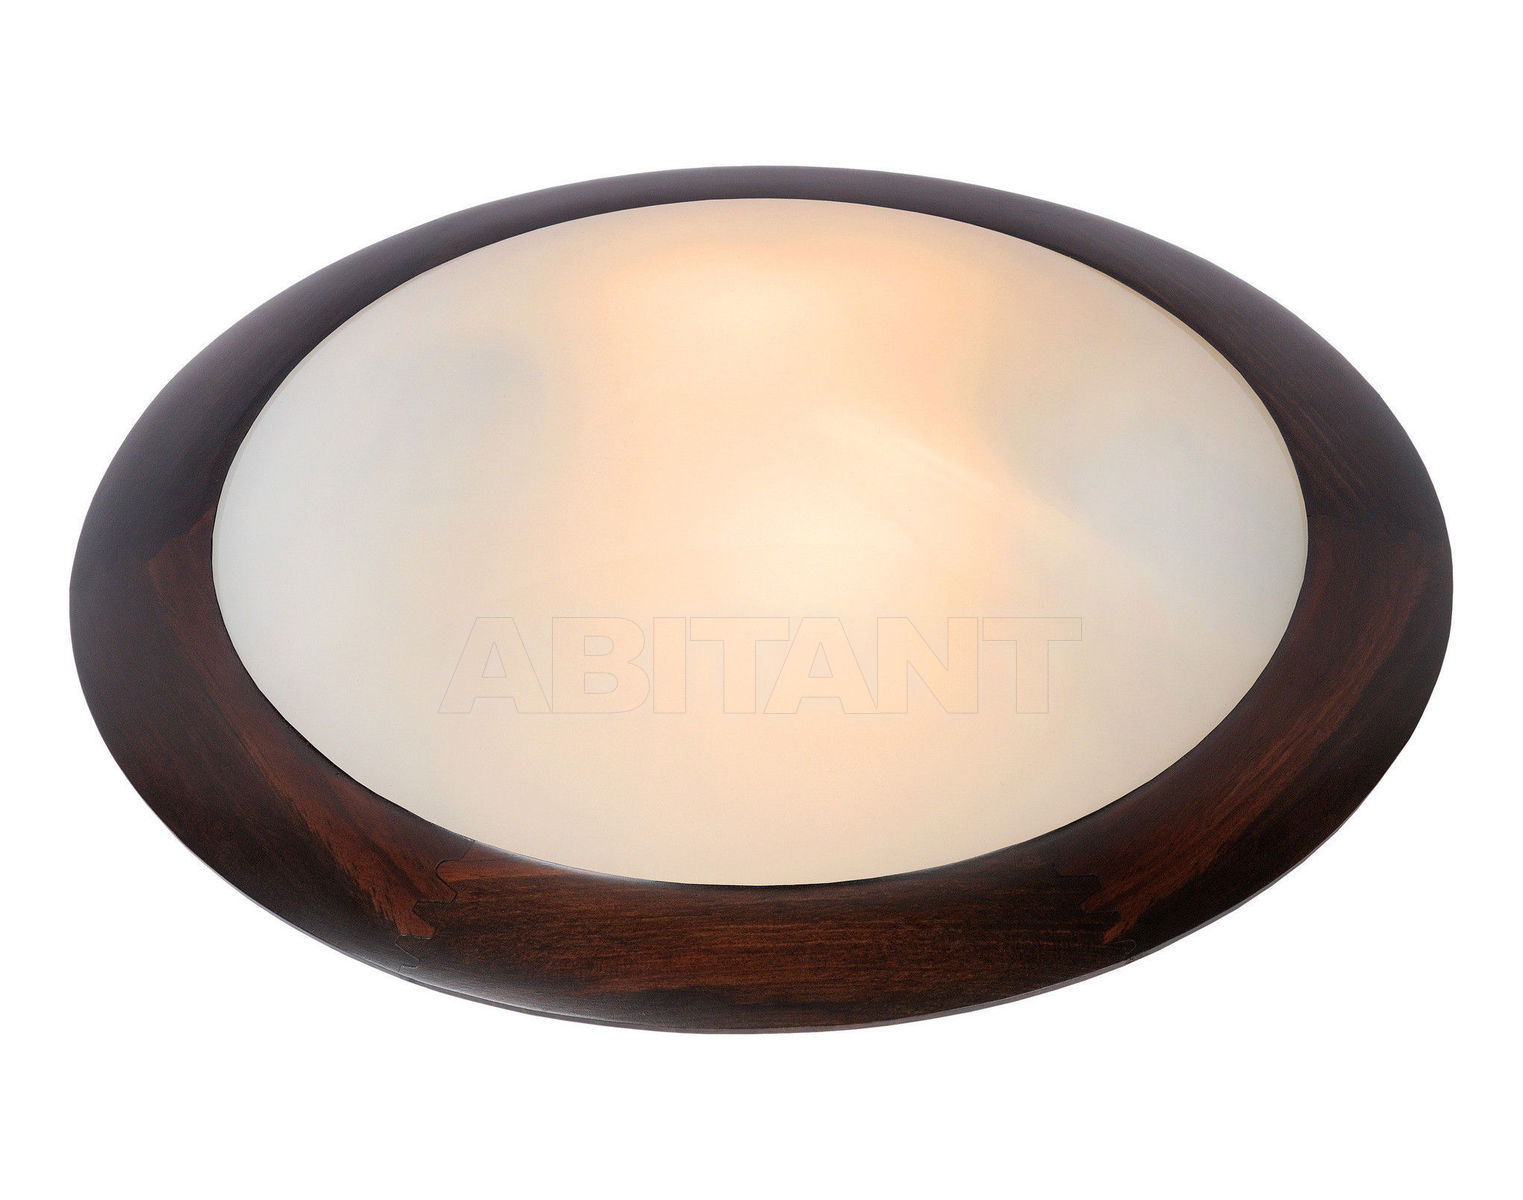 Купить Светильник FOREST Lucide  Ceiling & Wall Lights 39106/72/73